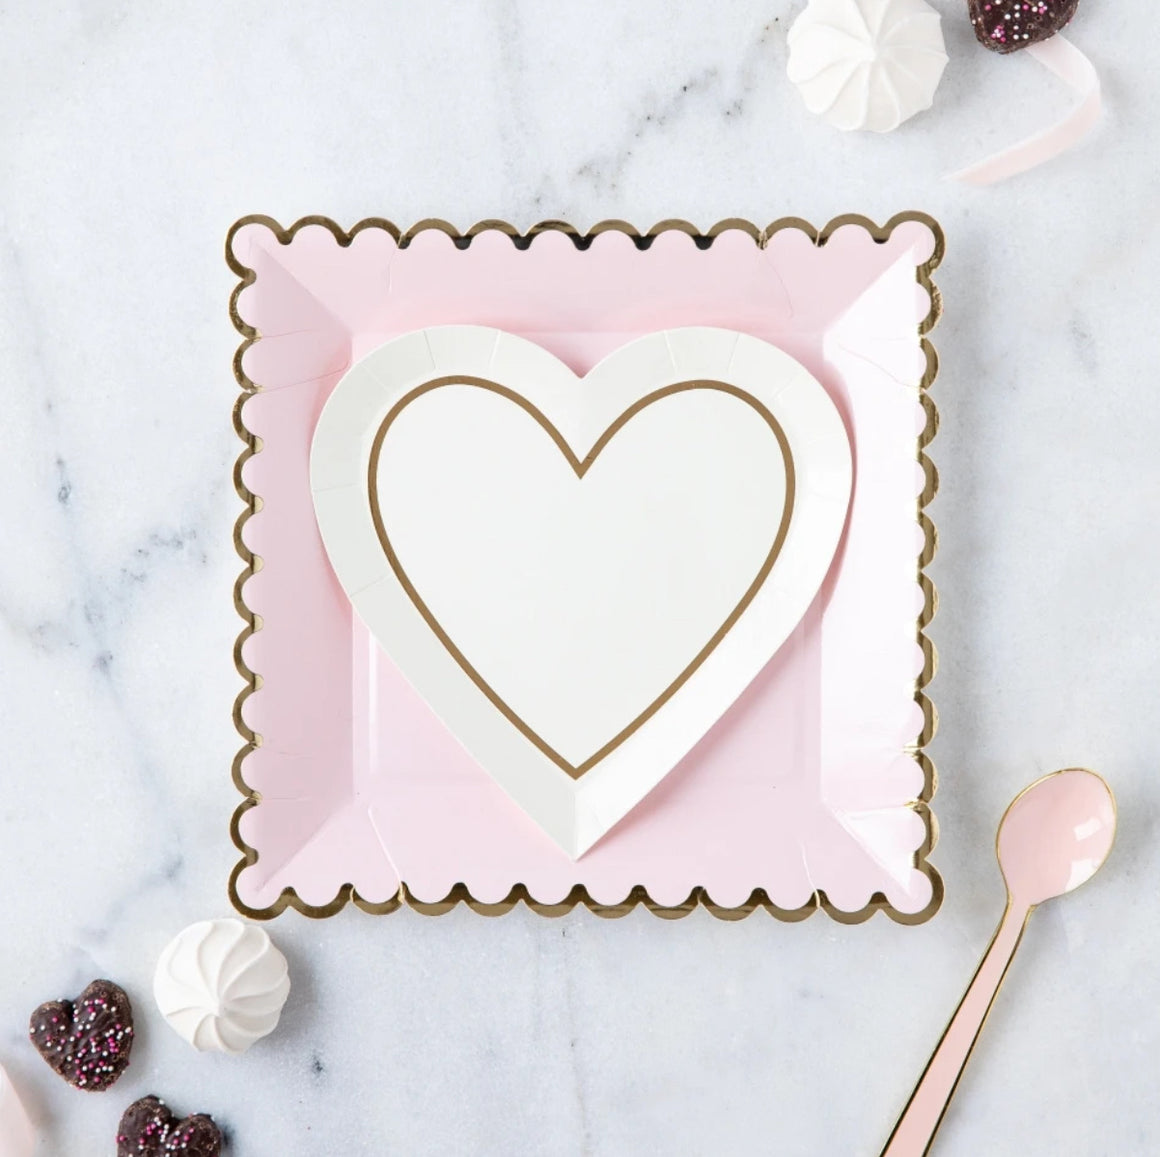 PLATES - SMALL HEART WHITE & GOLD